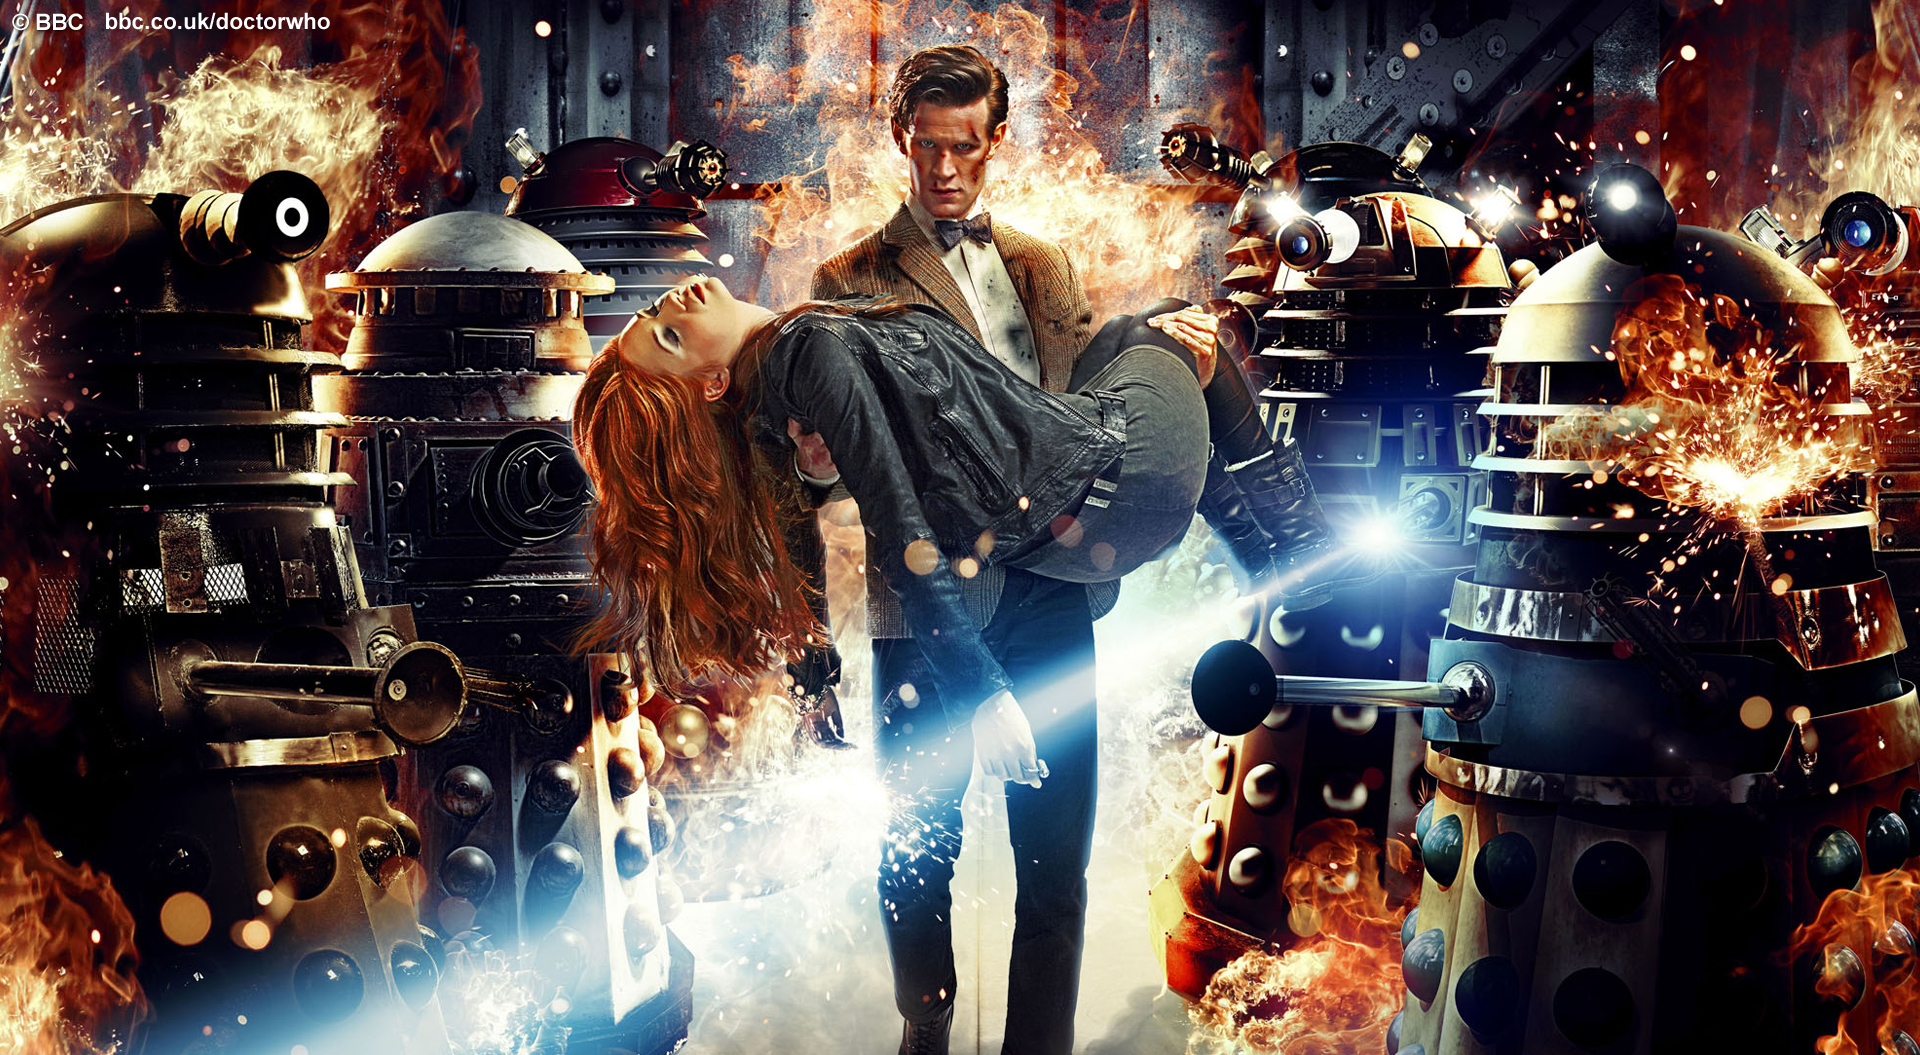 Cool New Doctor Who Wallpaper from the BBC Ace Comics UK and 1920x1055